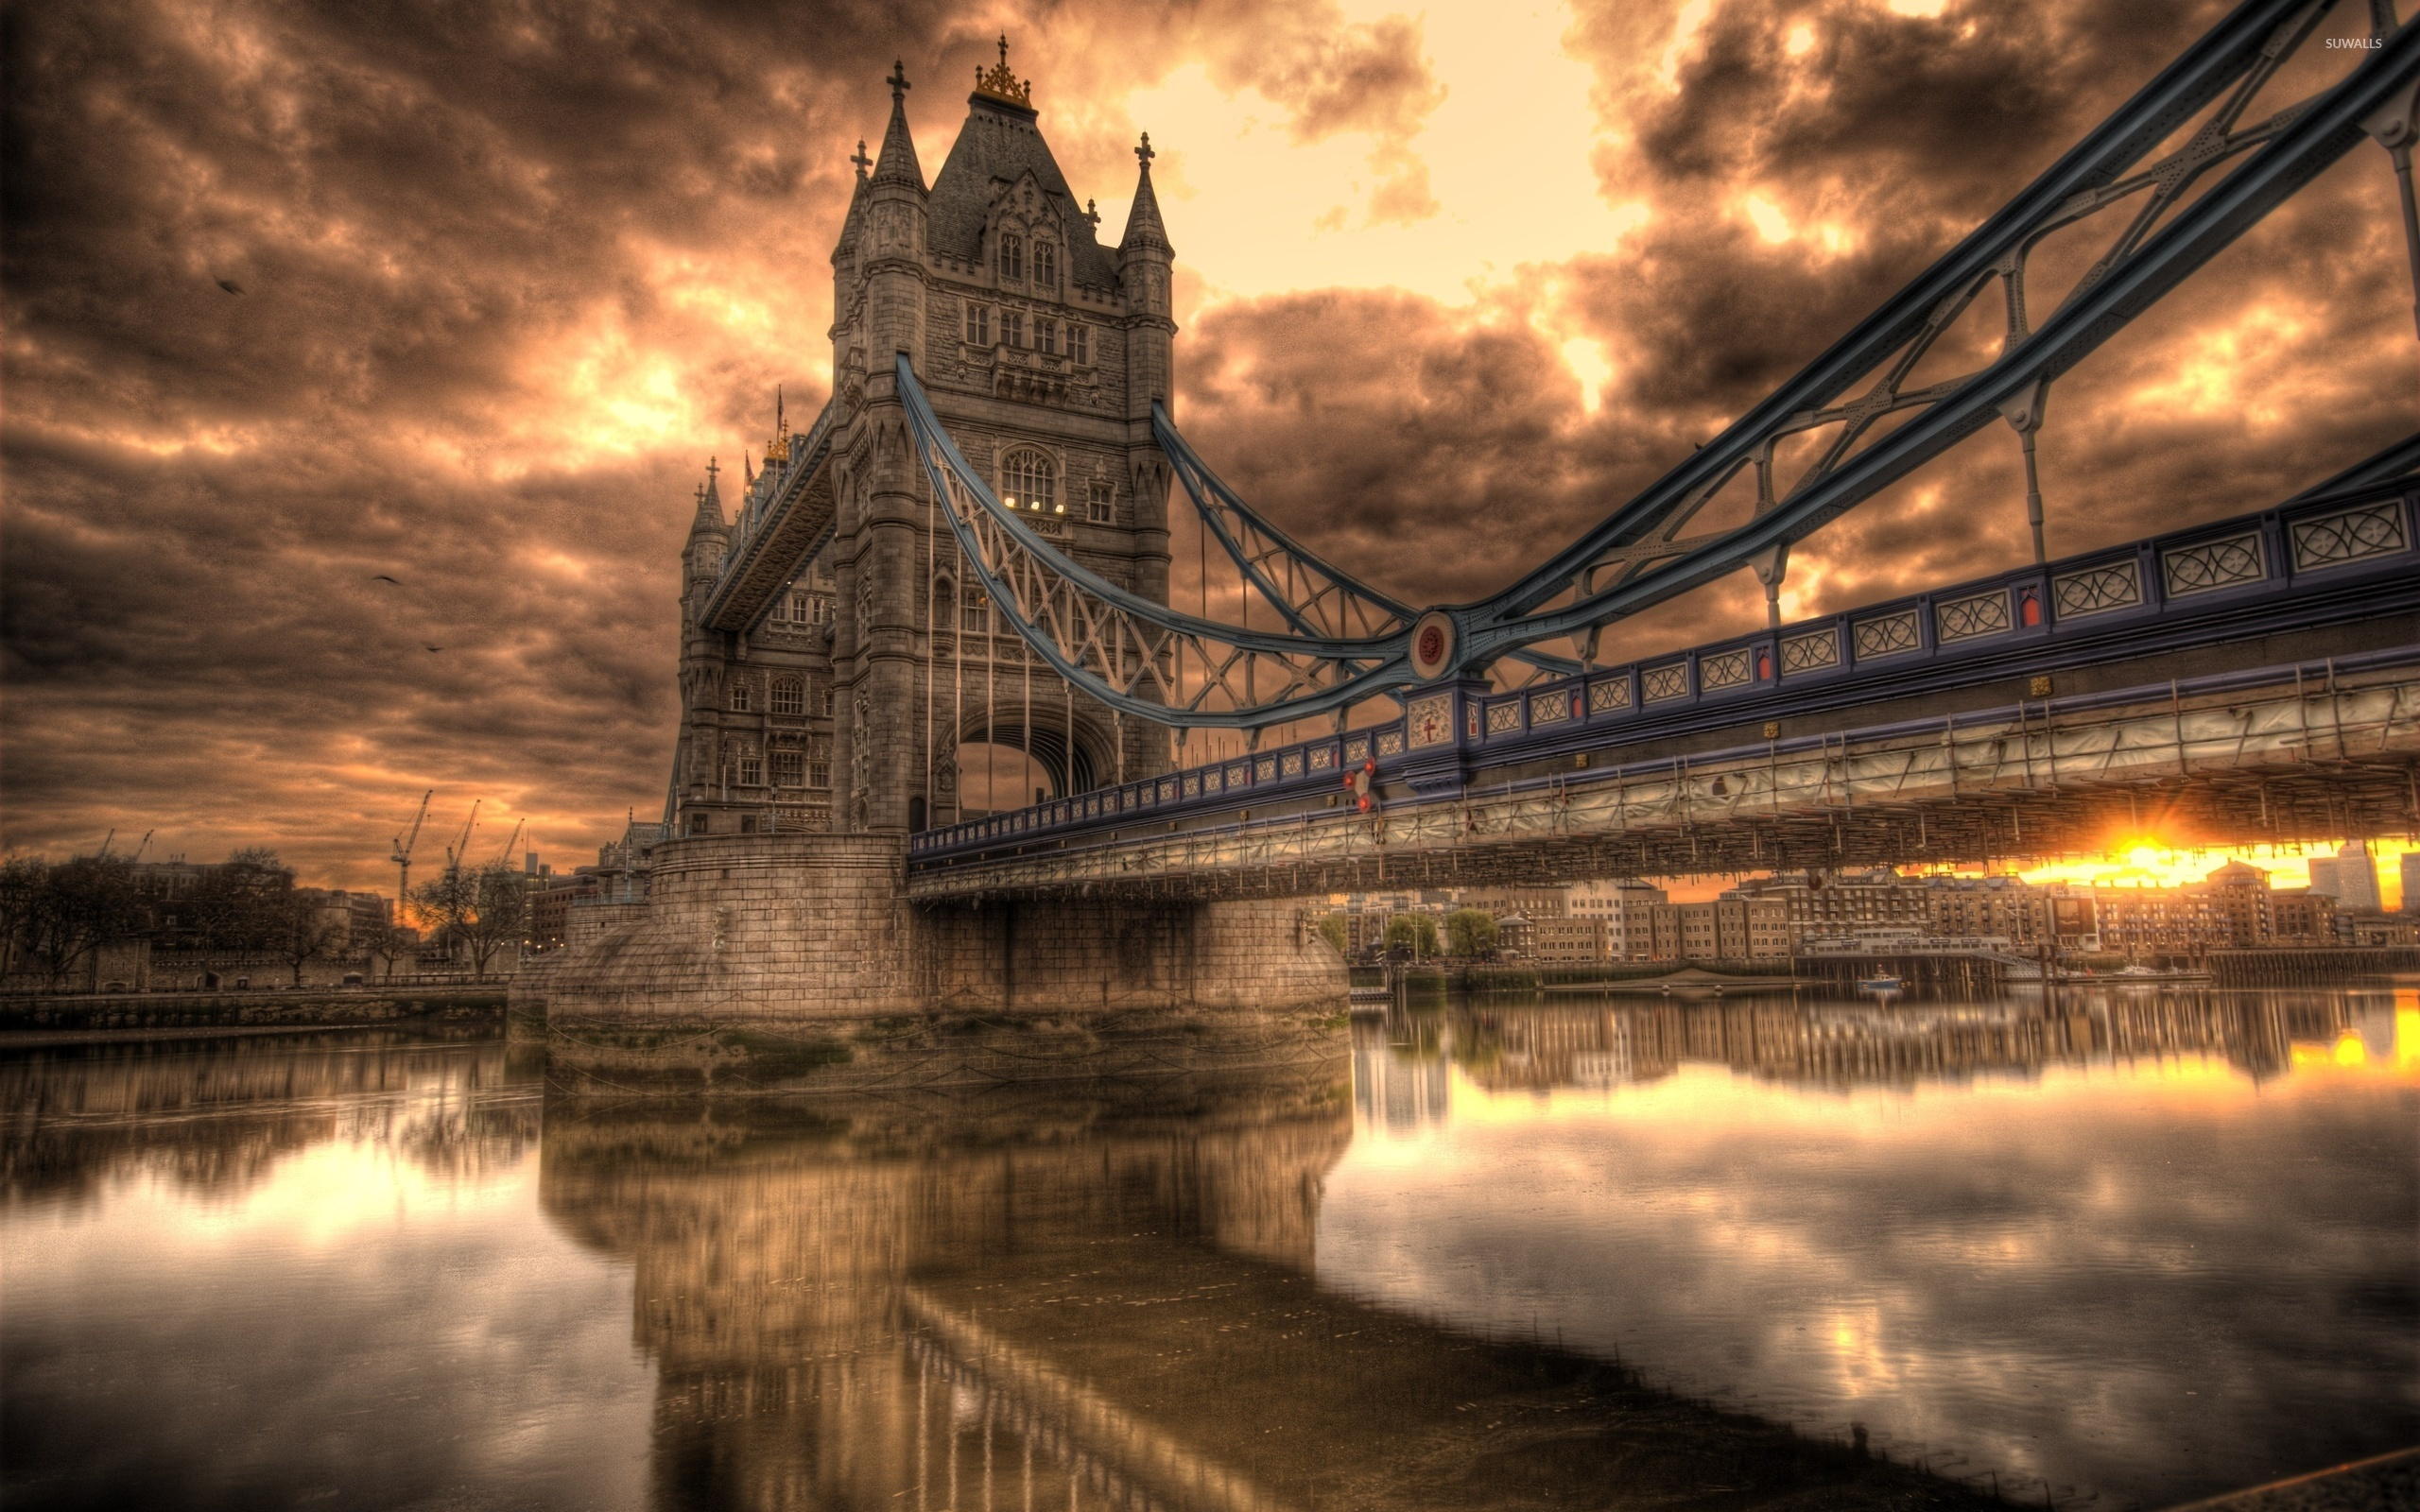 Sunset-Clouds-Above-The-Tower-Bridge-49339-2560×1600-Wallpaper